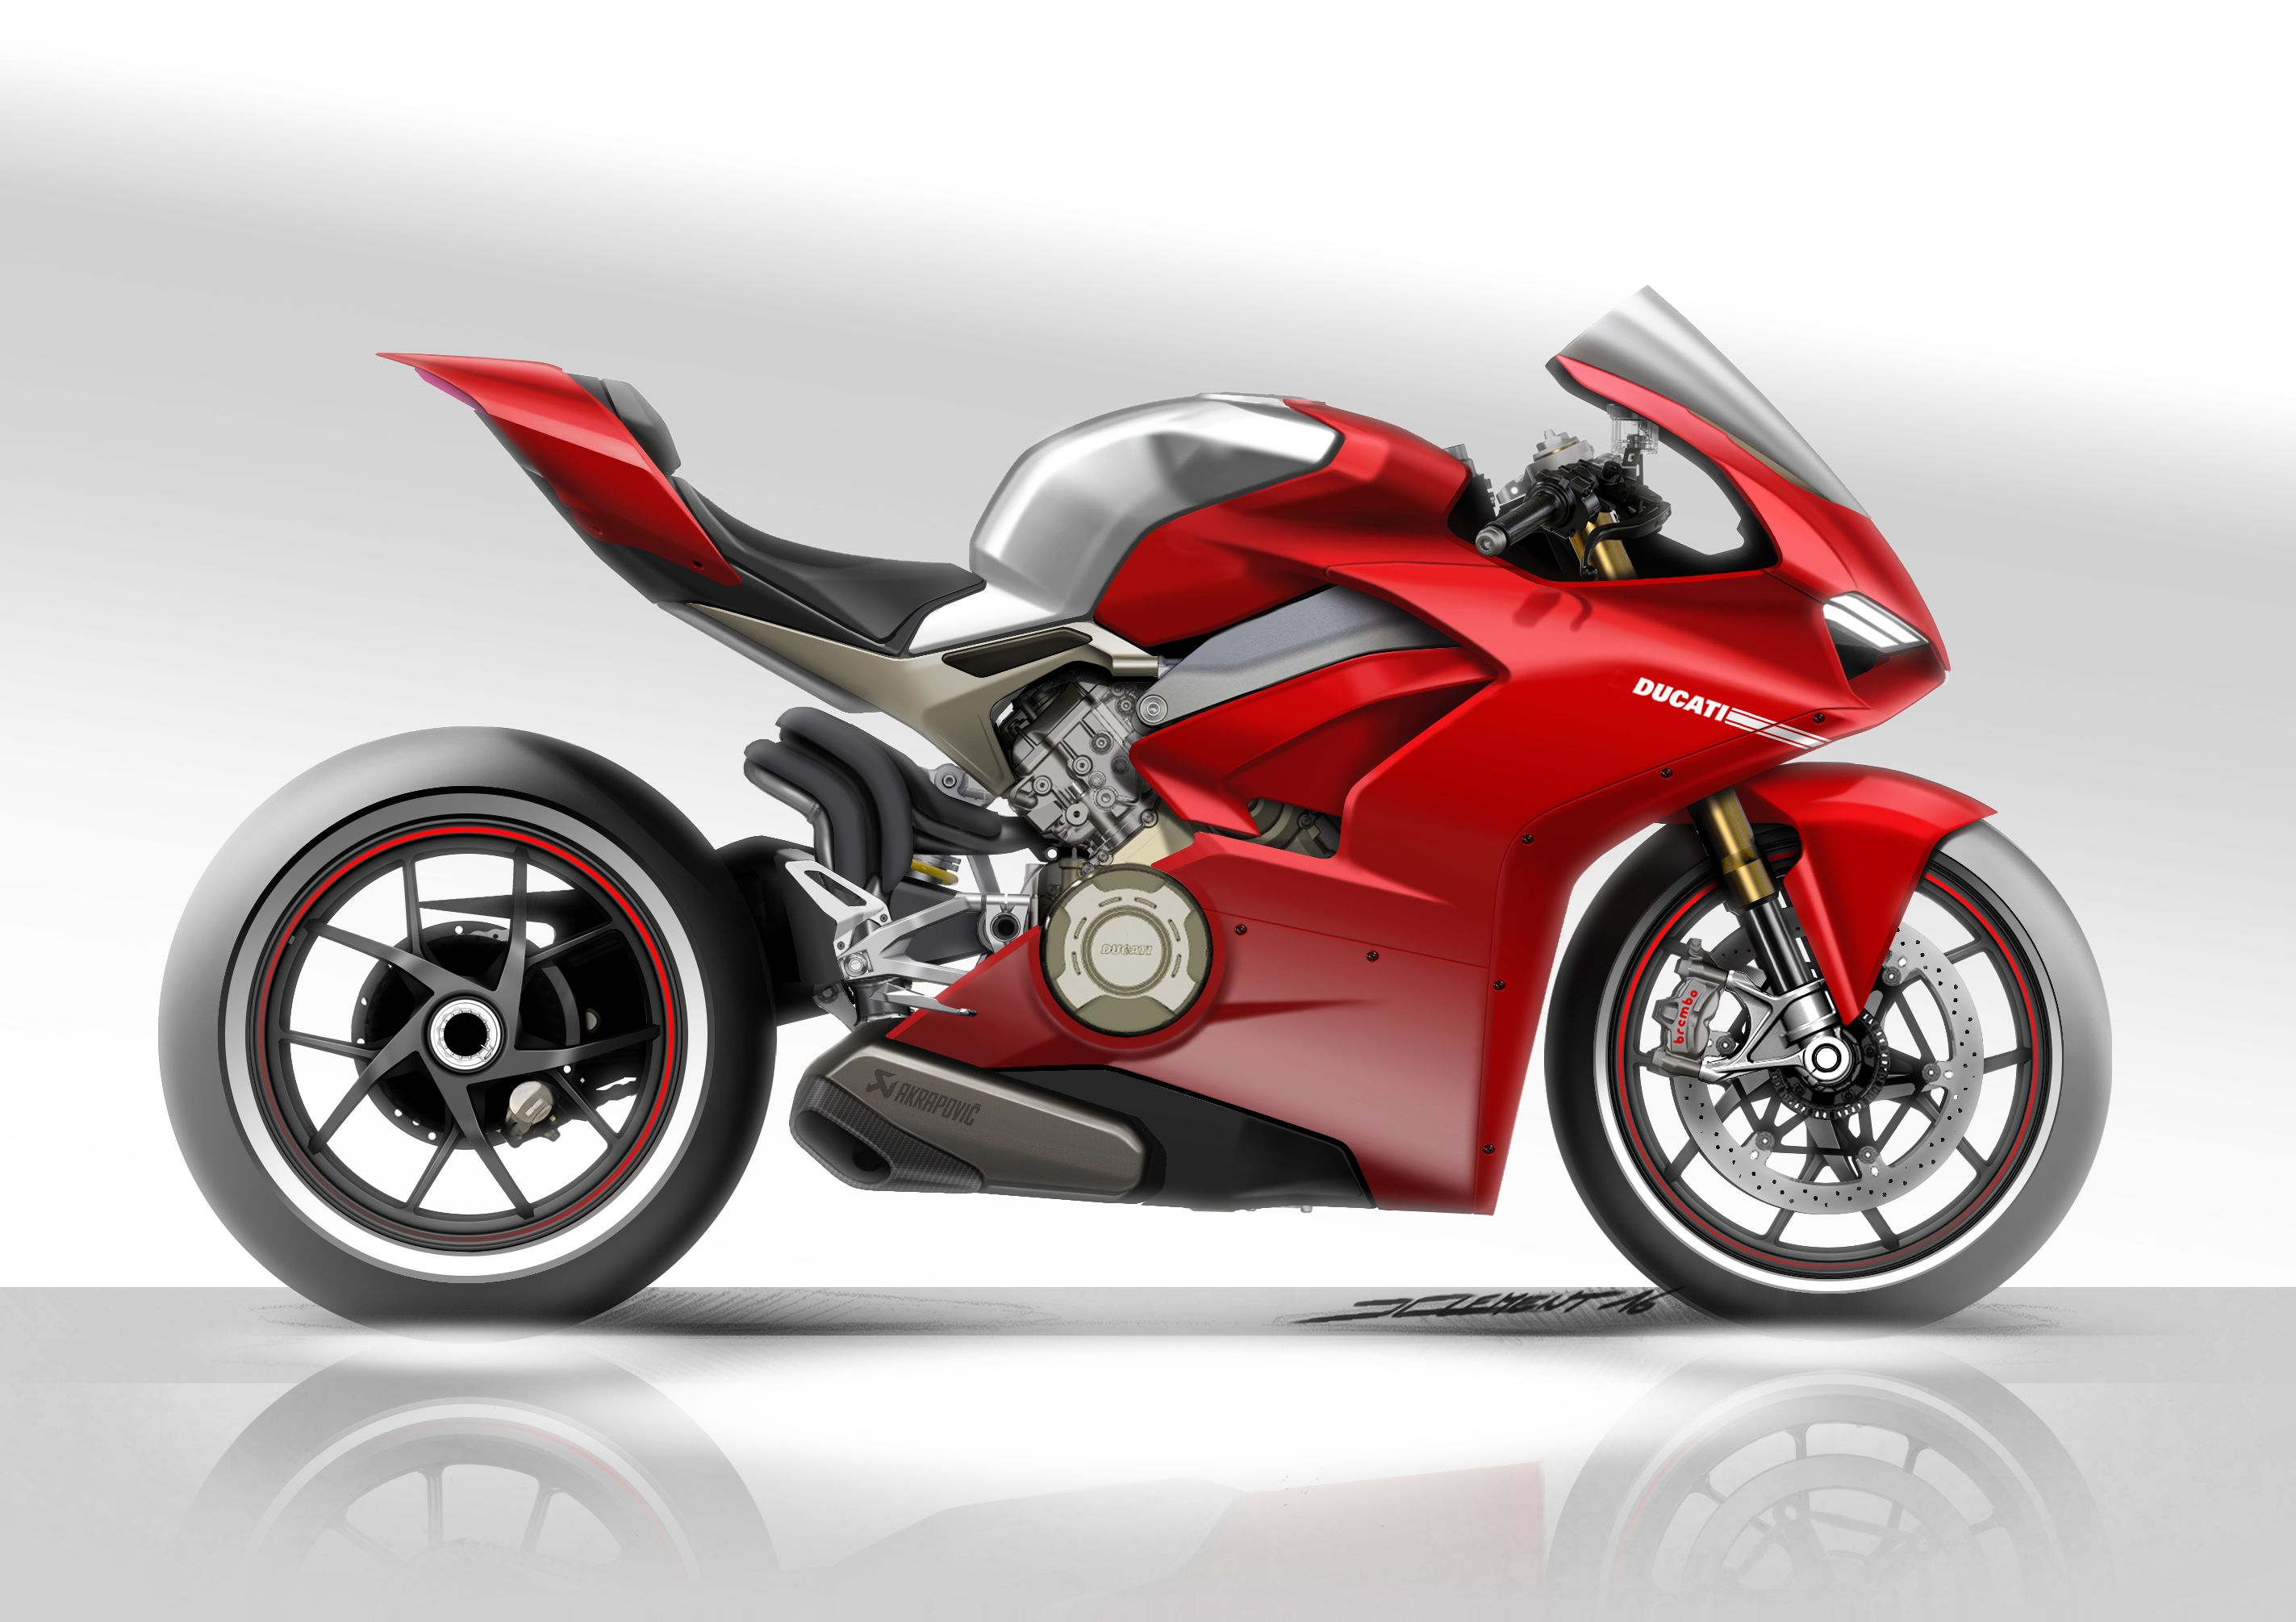 ducati panigale v4 2018 design sketch ducati pinterest ducati and wheels. Black Bedroom Furniture Sets. Home Design Ideas